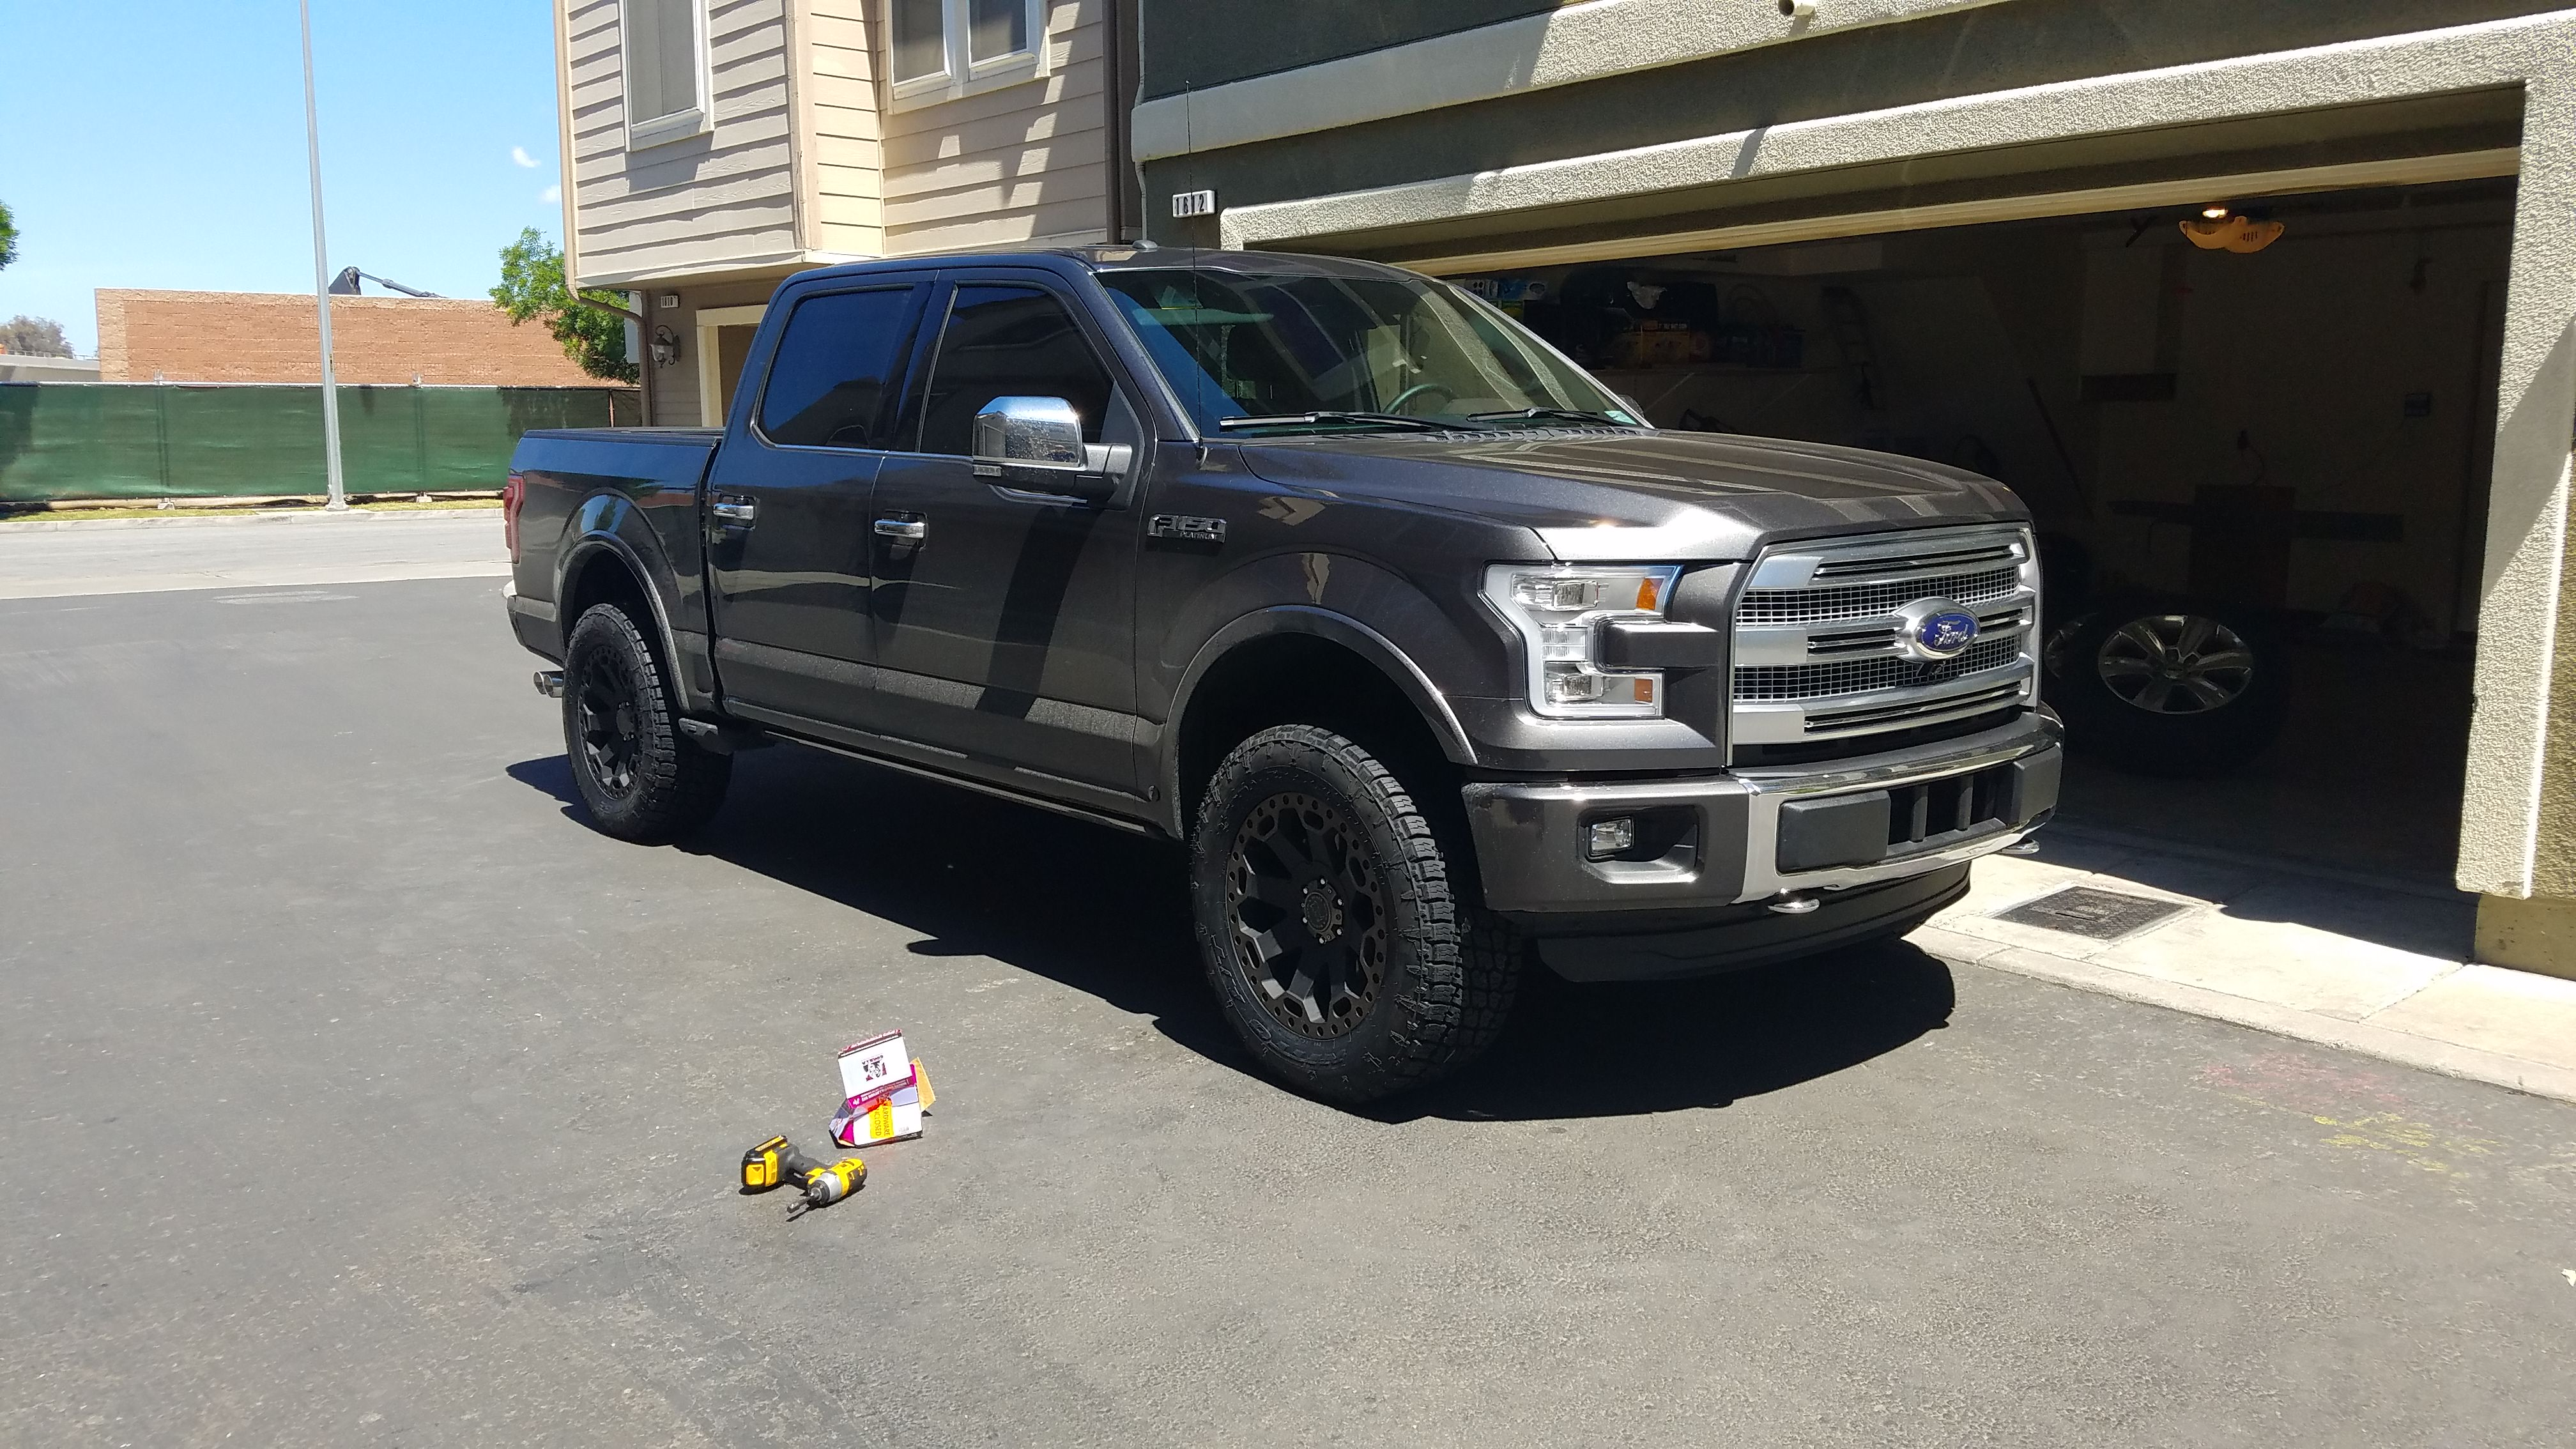 Vote Now April 2016 F150 Ecoboost Truck of the Month Contest